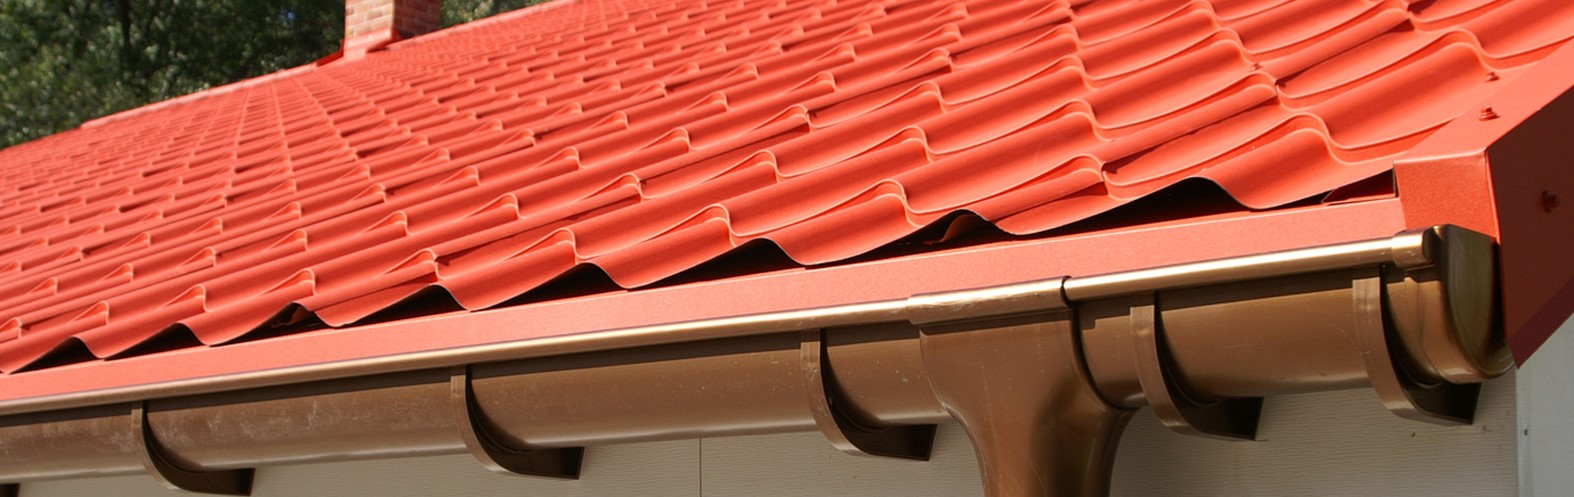 Middle Georgia Roofing image 0